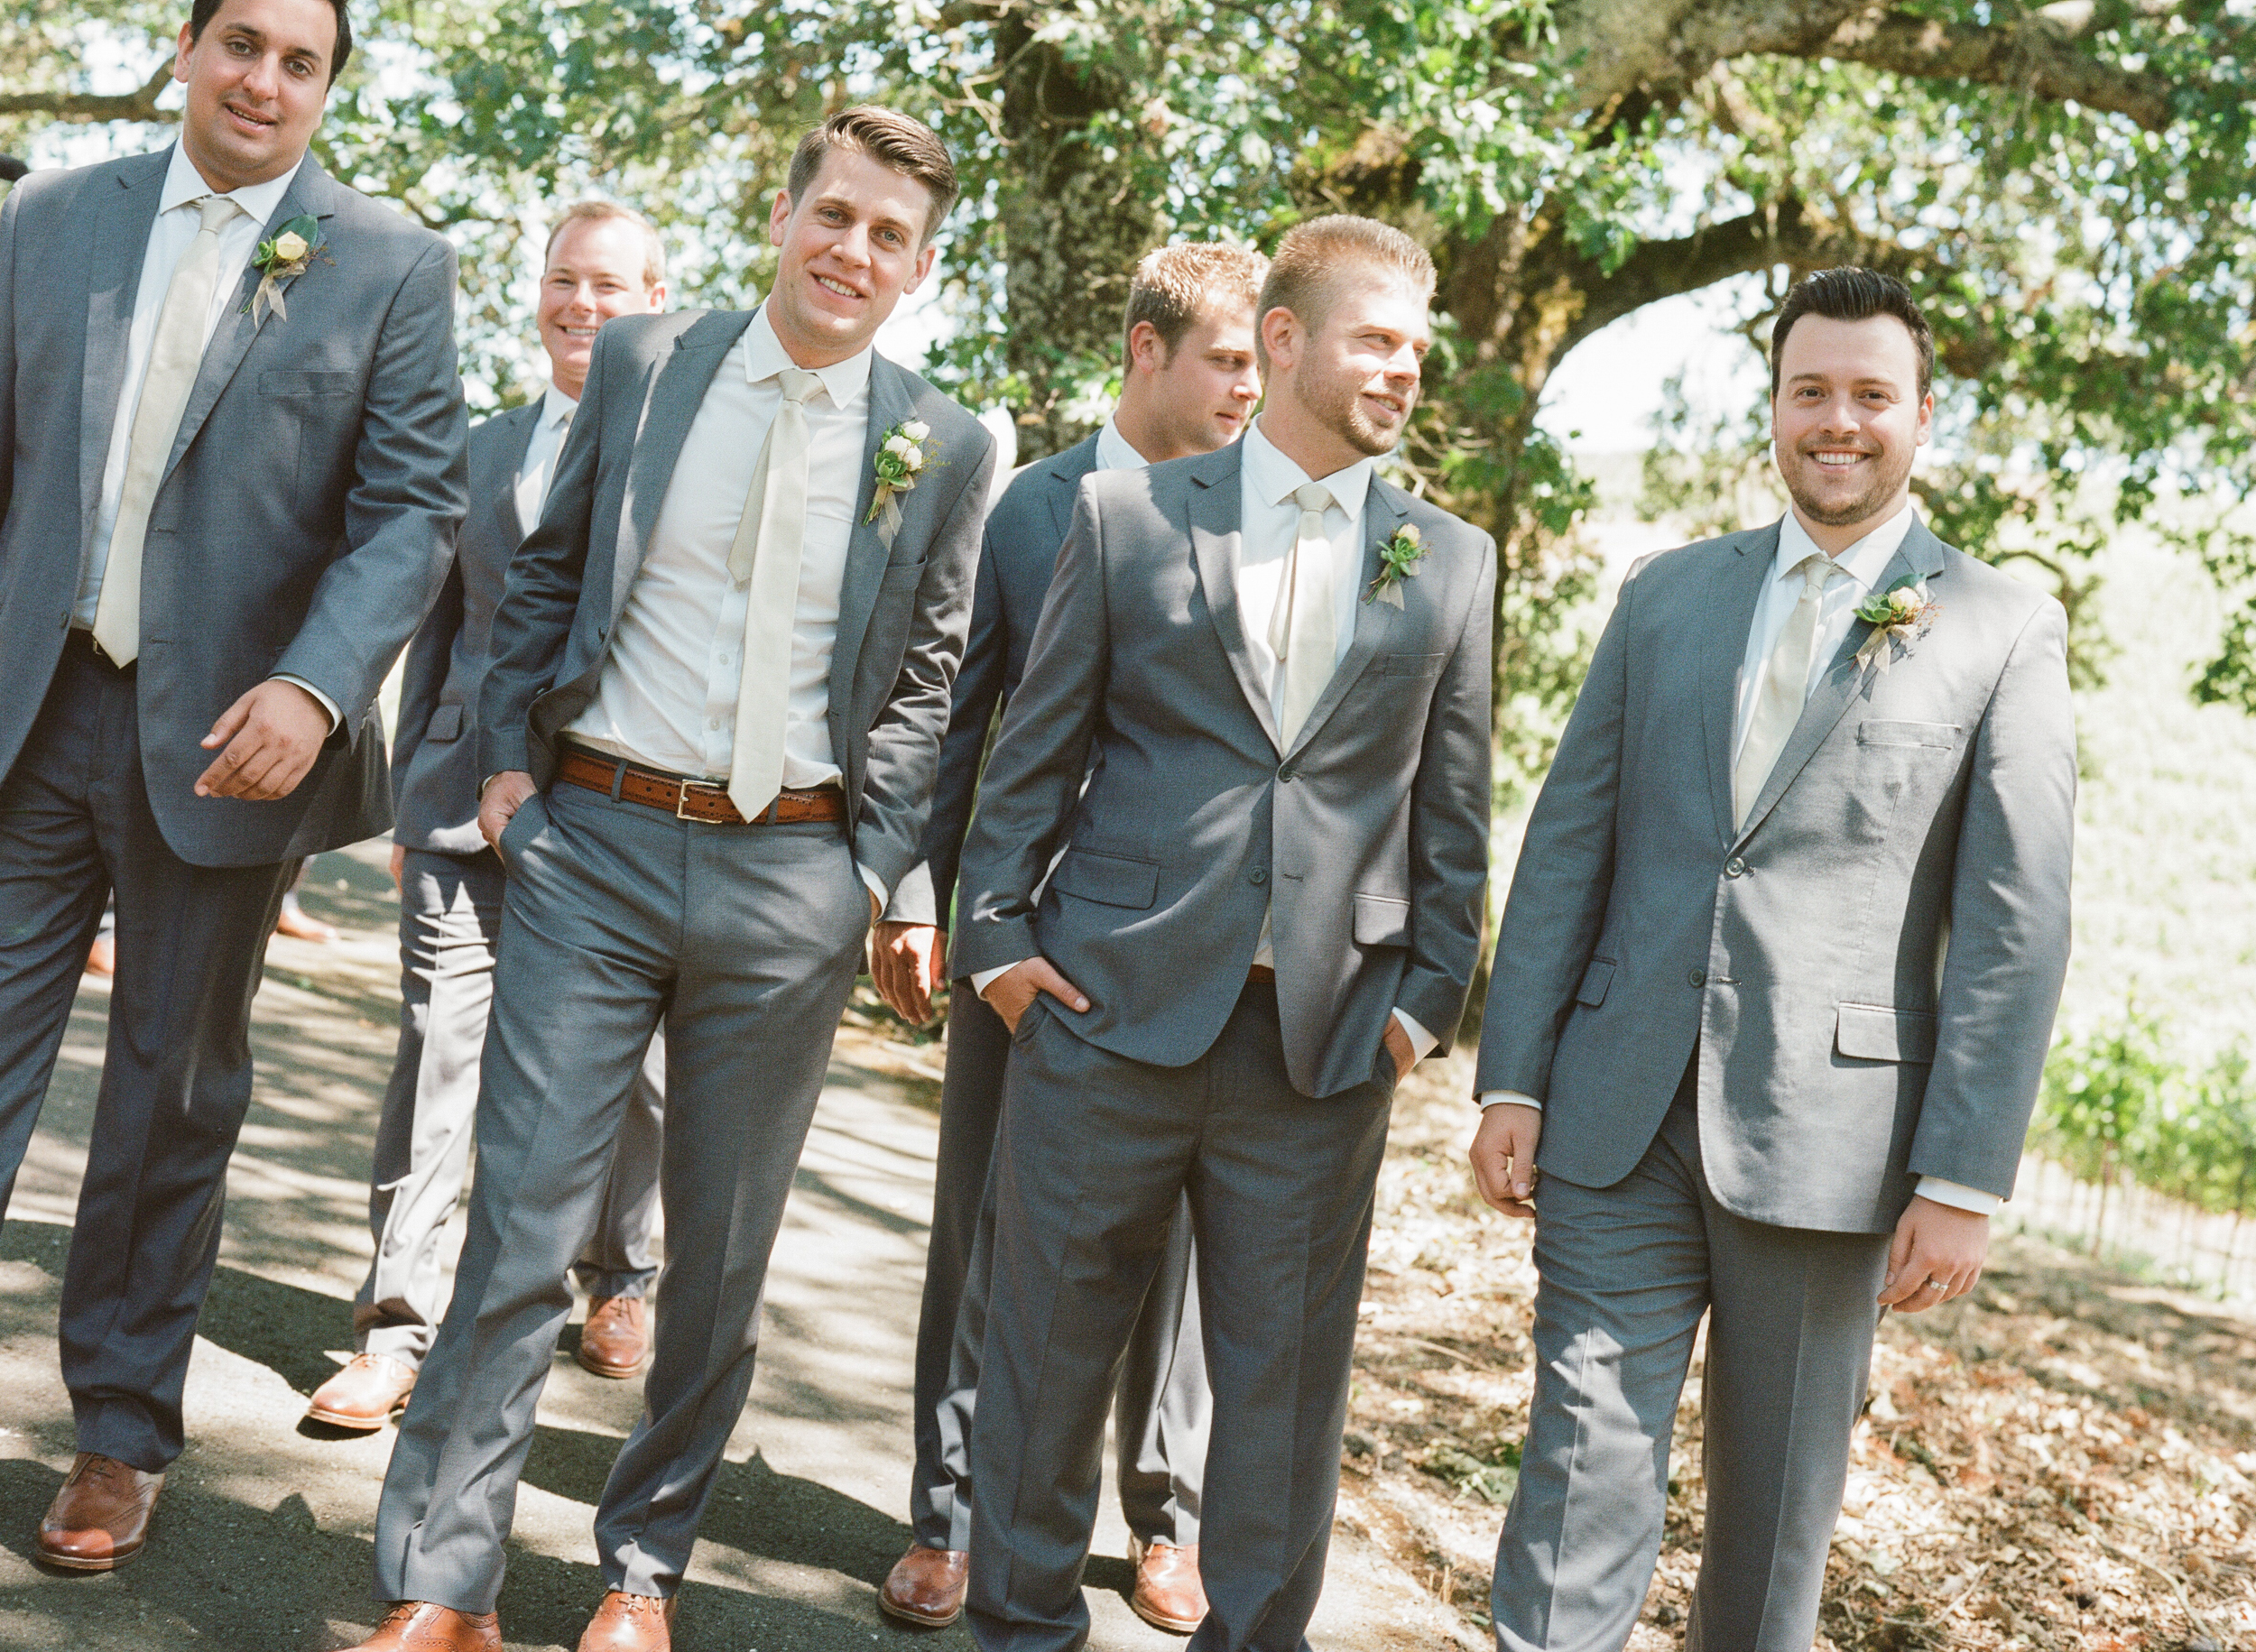 The dapper groomsmen walk toward the camera together in grey suits and white ties; photo by Sylvie Gil